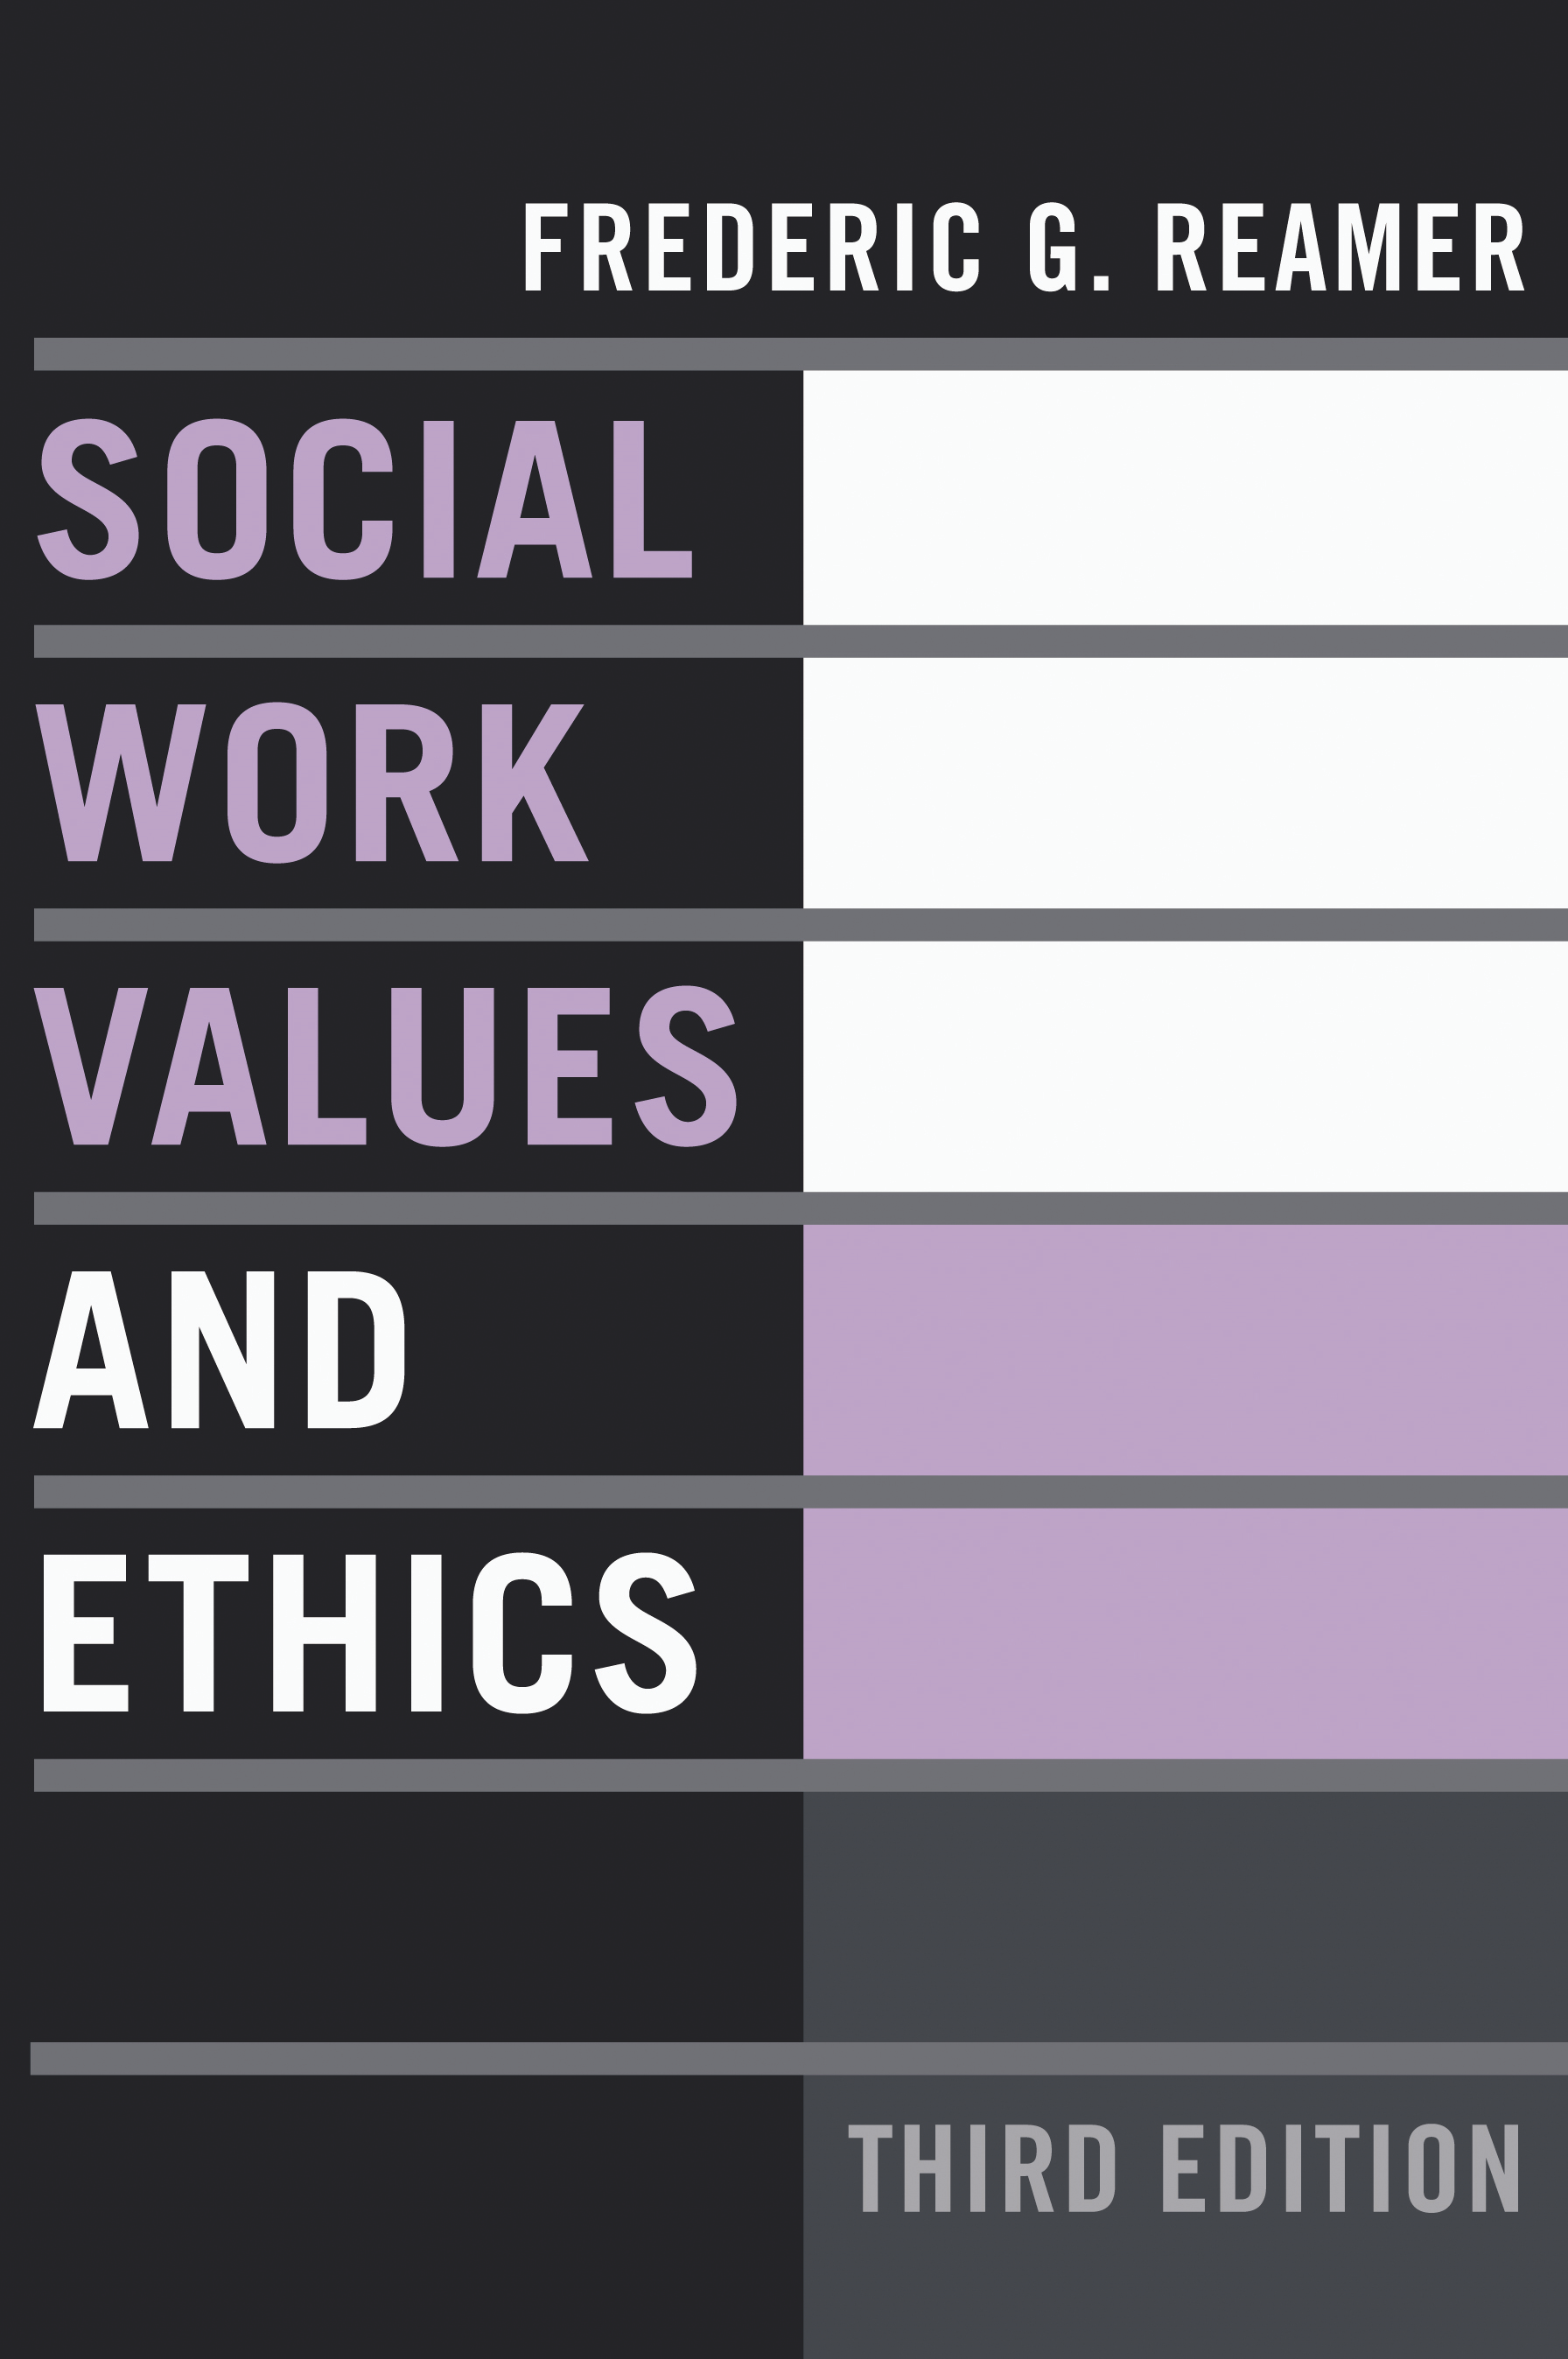 Social Work Values and Ethics By: Frederic G. Reamer